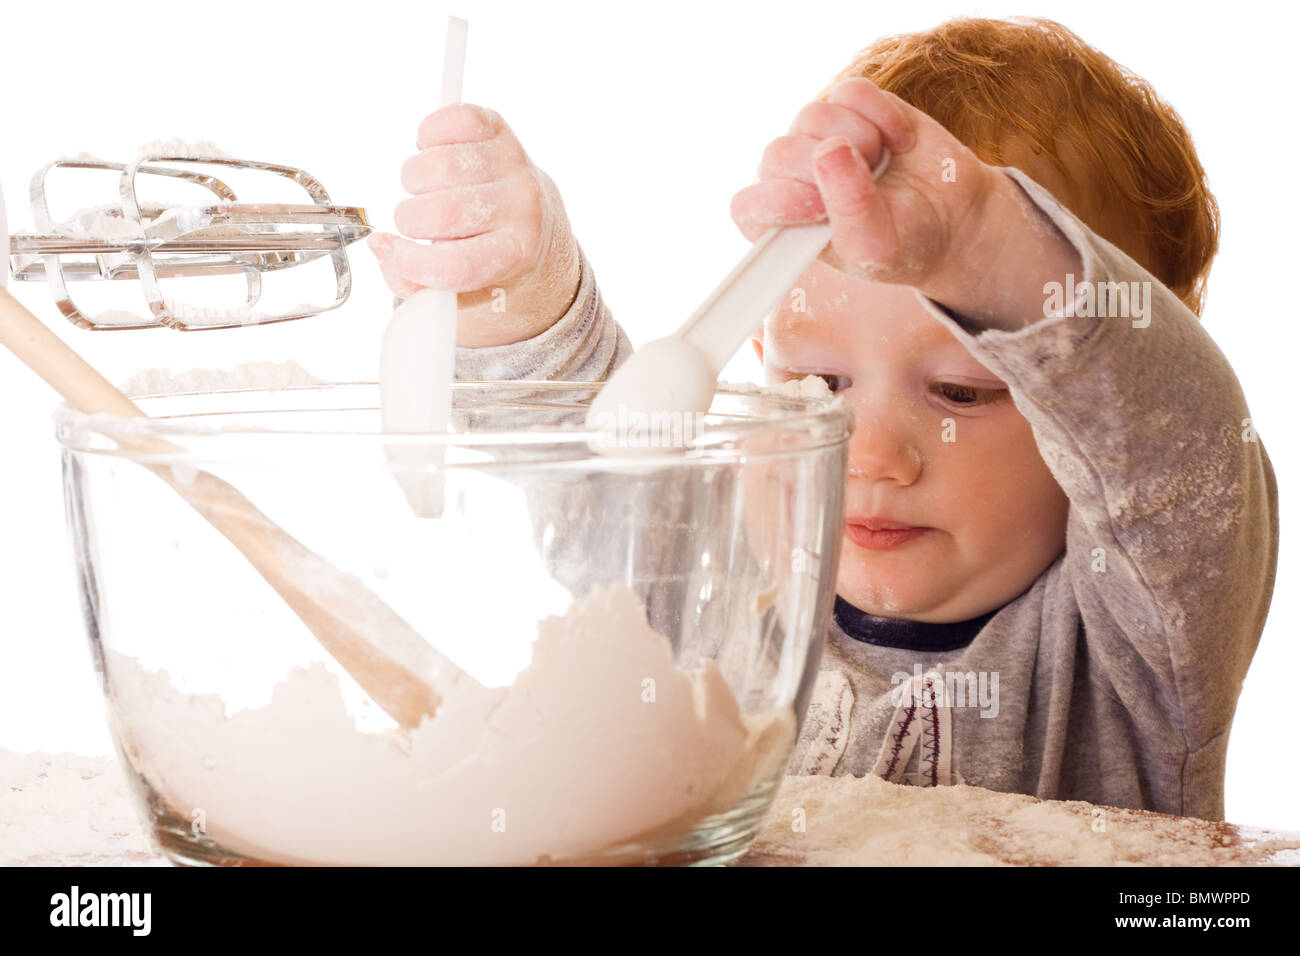 Boy cooking, mixing, and making mess. Isolated on white - Stock Image